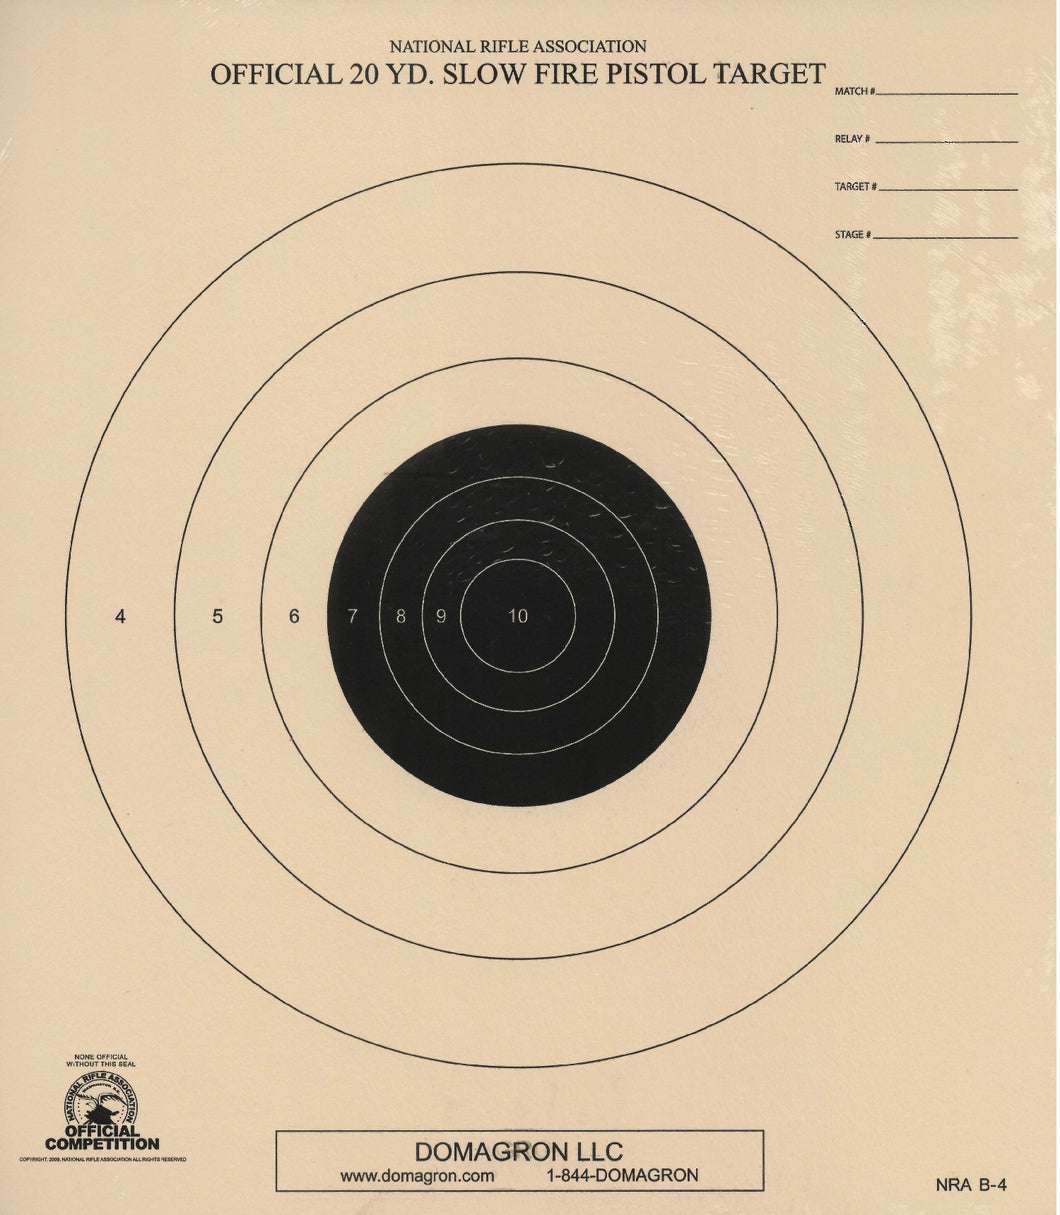 B-4 - 20 Yard Slow Fire Target Official NRA Target (Pack of 50)